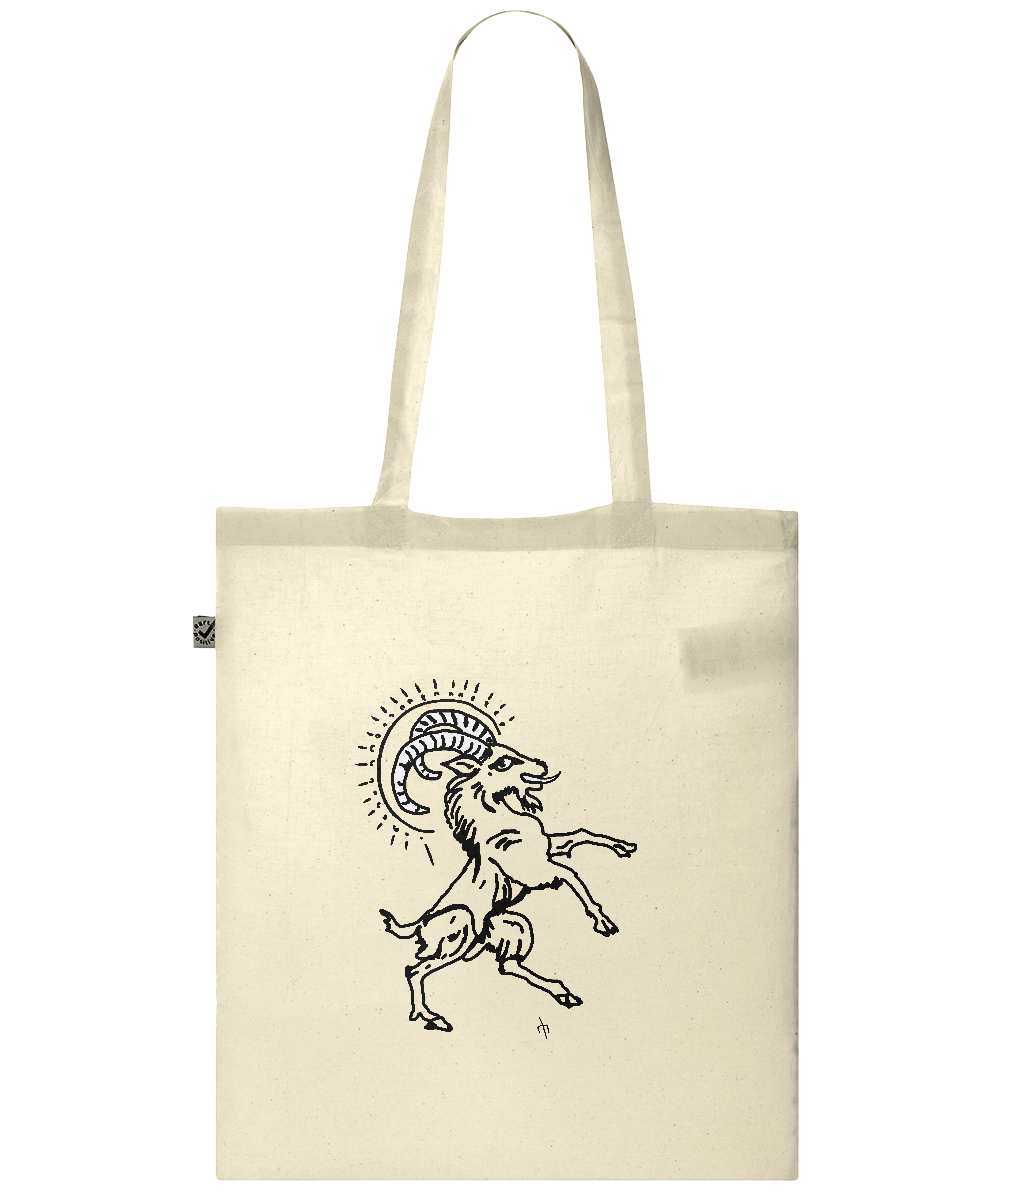 Shopper Tote Bag - IN CORNUTUM